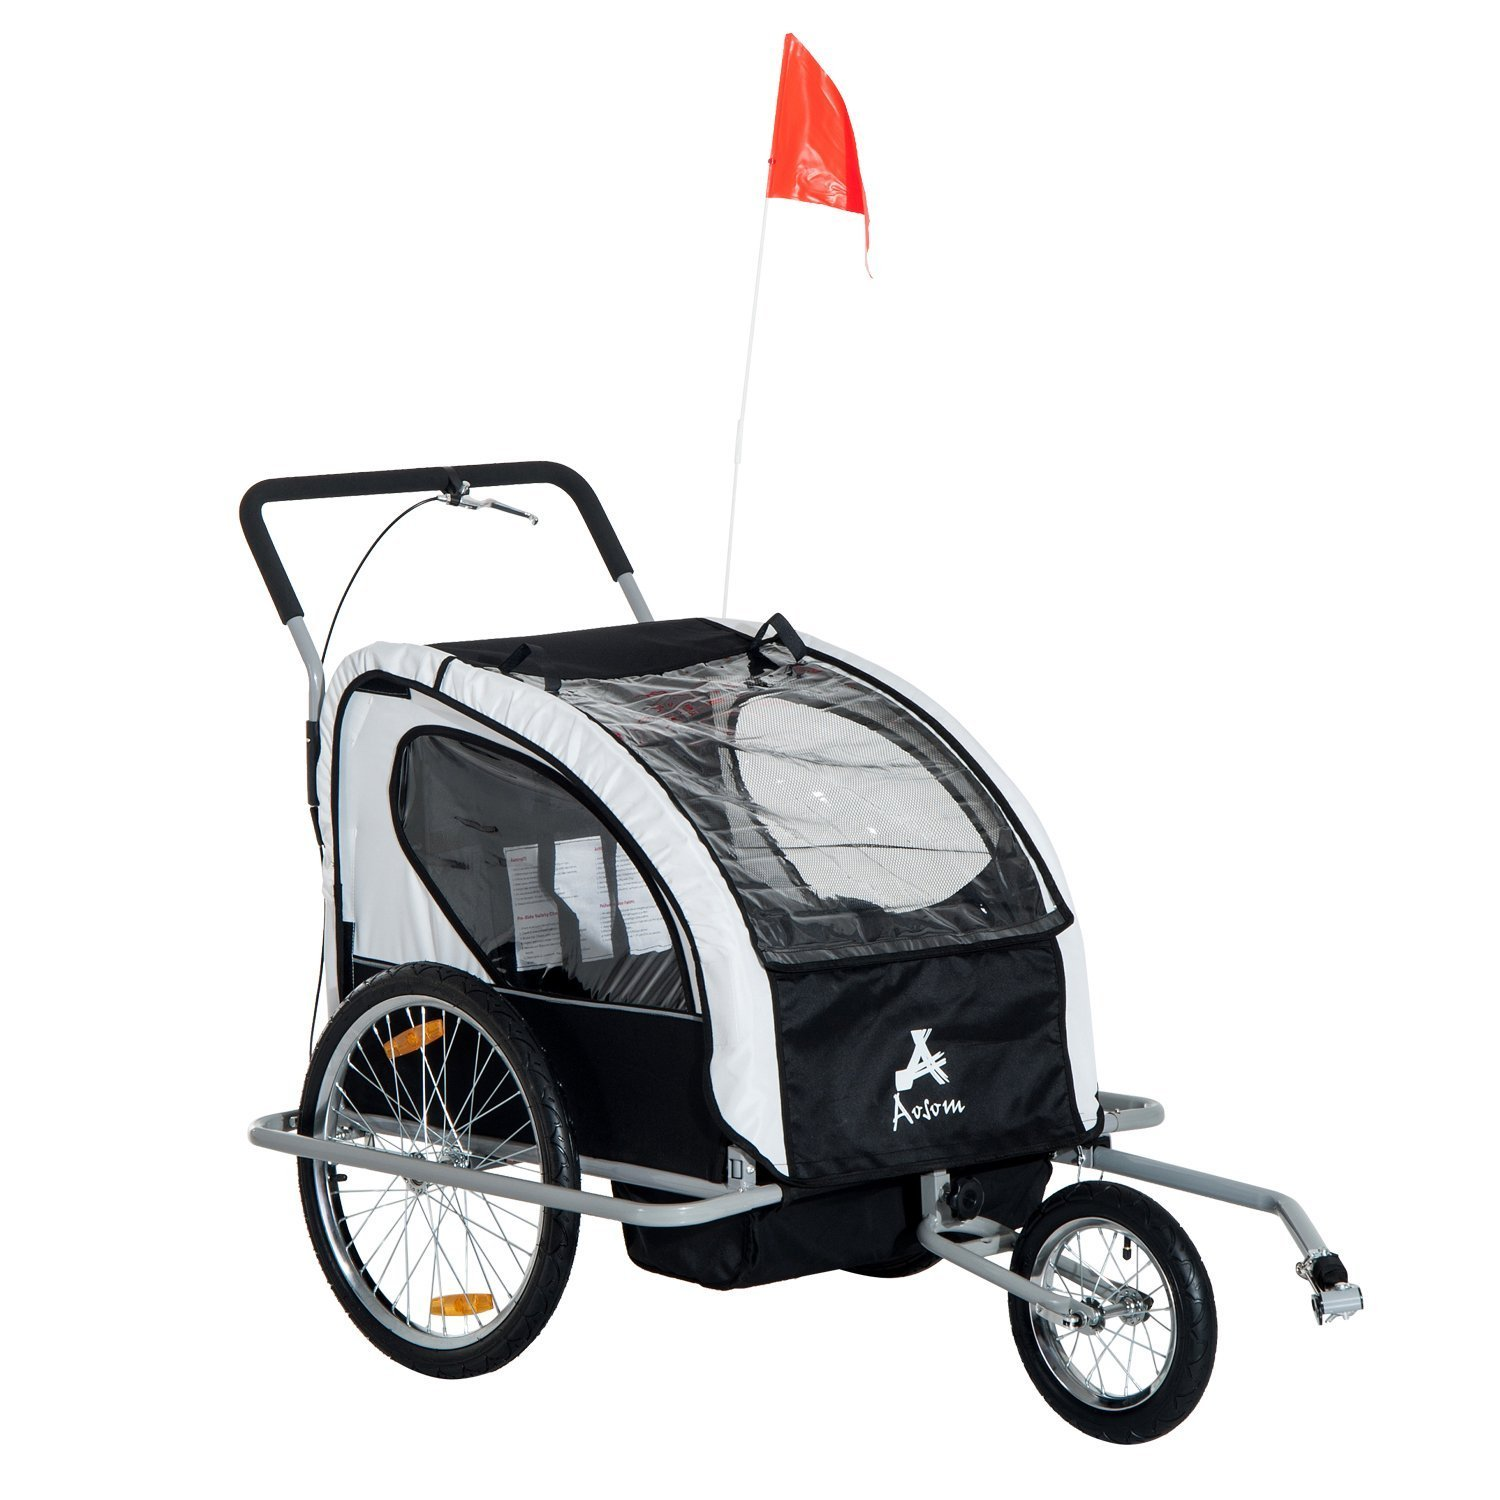 Kid Carrier for Bikes - Aosom Elite 2-in-1 Double Child Bike Trailer/Jogger